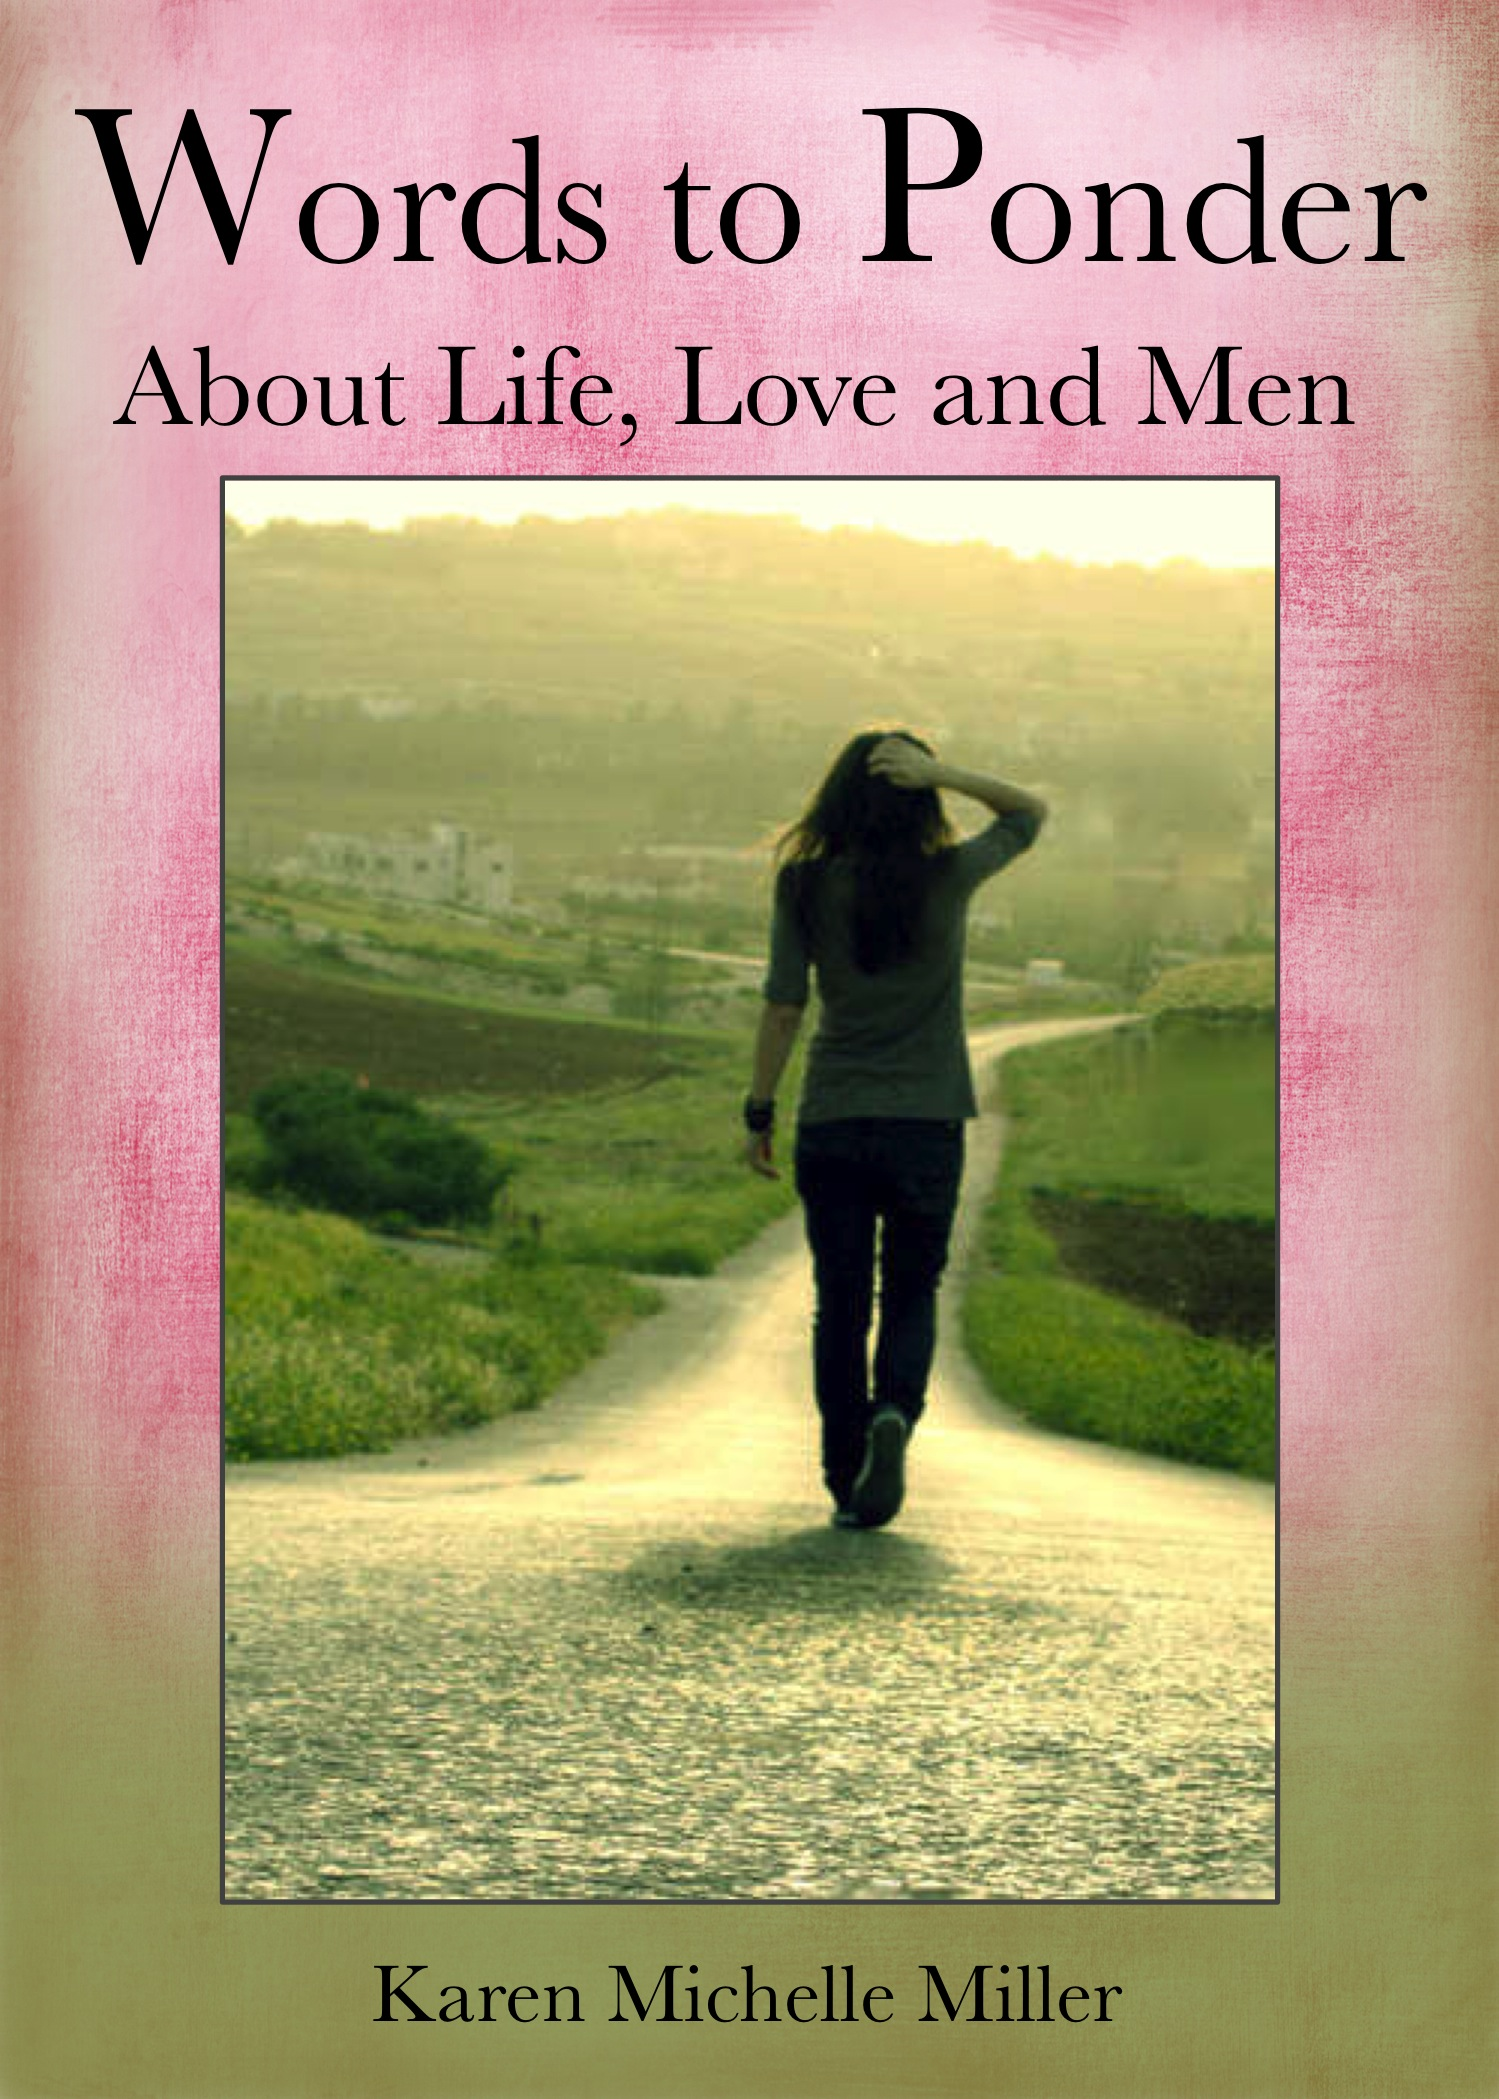 Karen Miller Book: Words to Ponder About Life, Love and Men